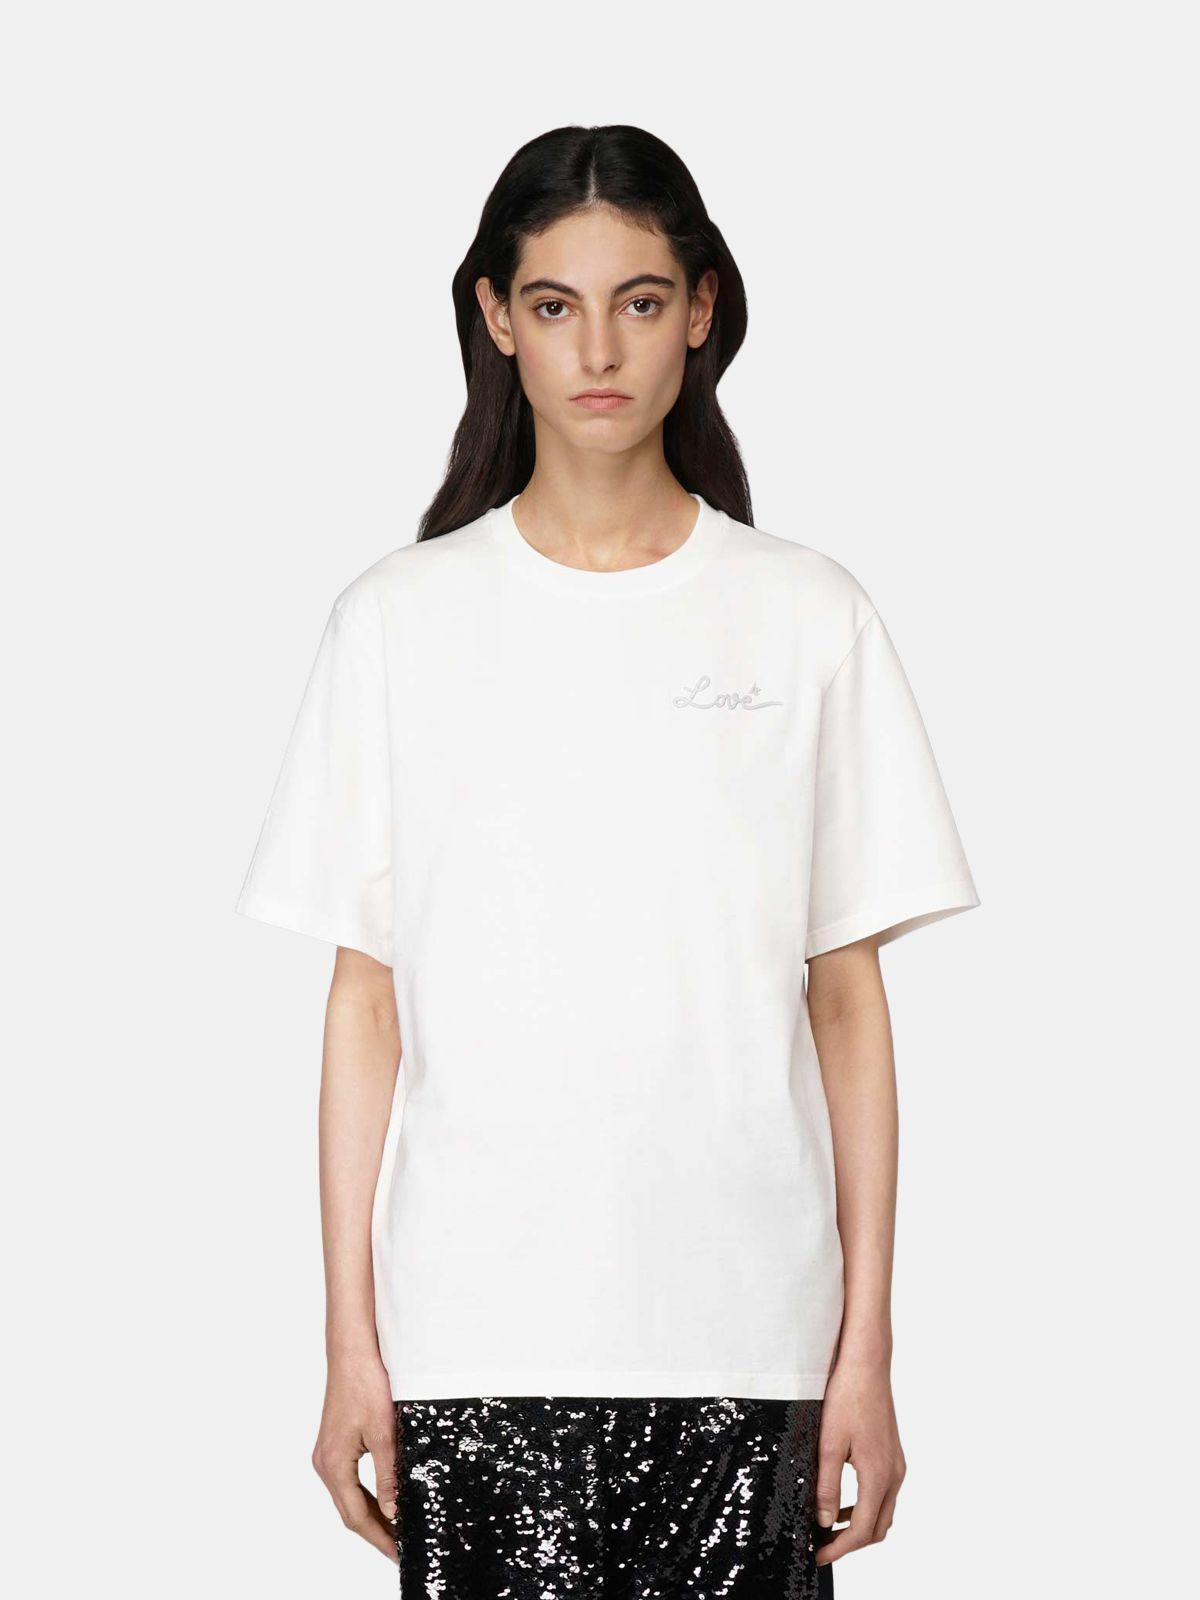 White Golden T-shirt with Love embroidery